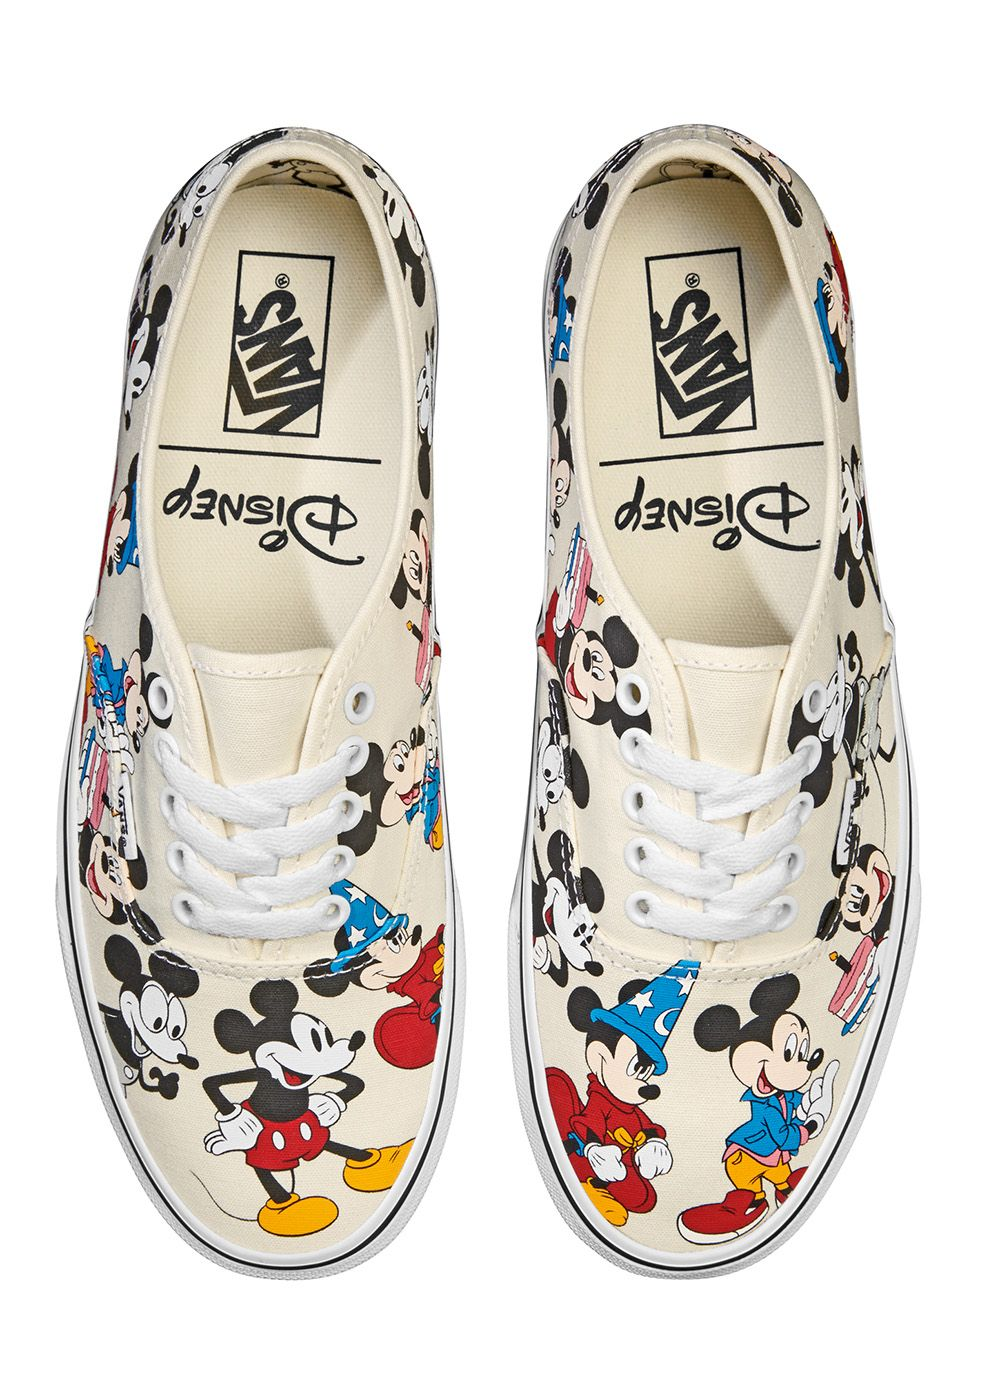 Vans Celebrates Mickey Mouse, With November Capsule